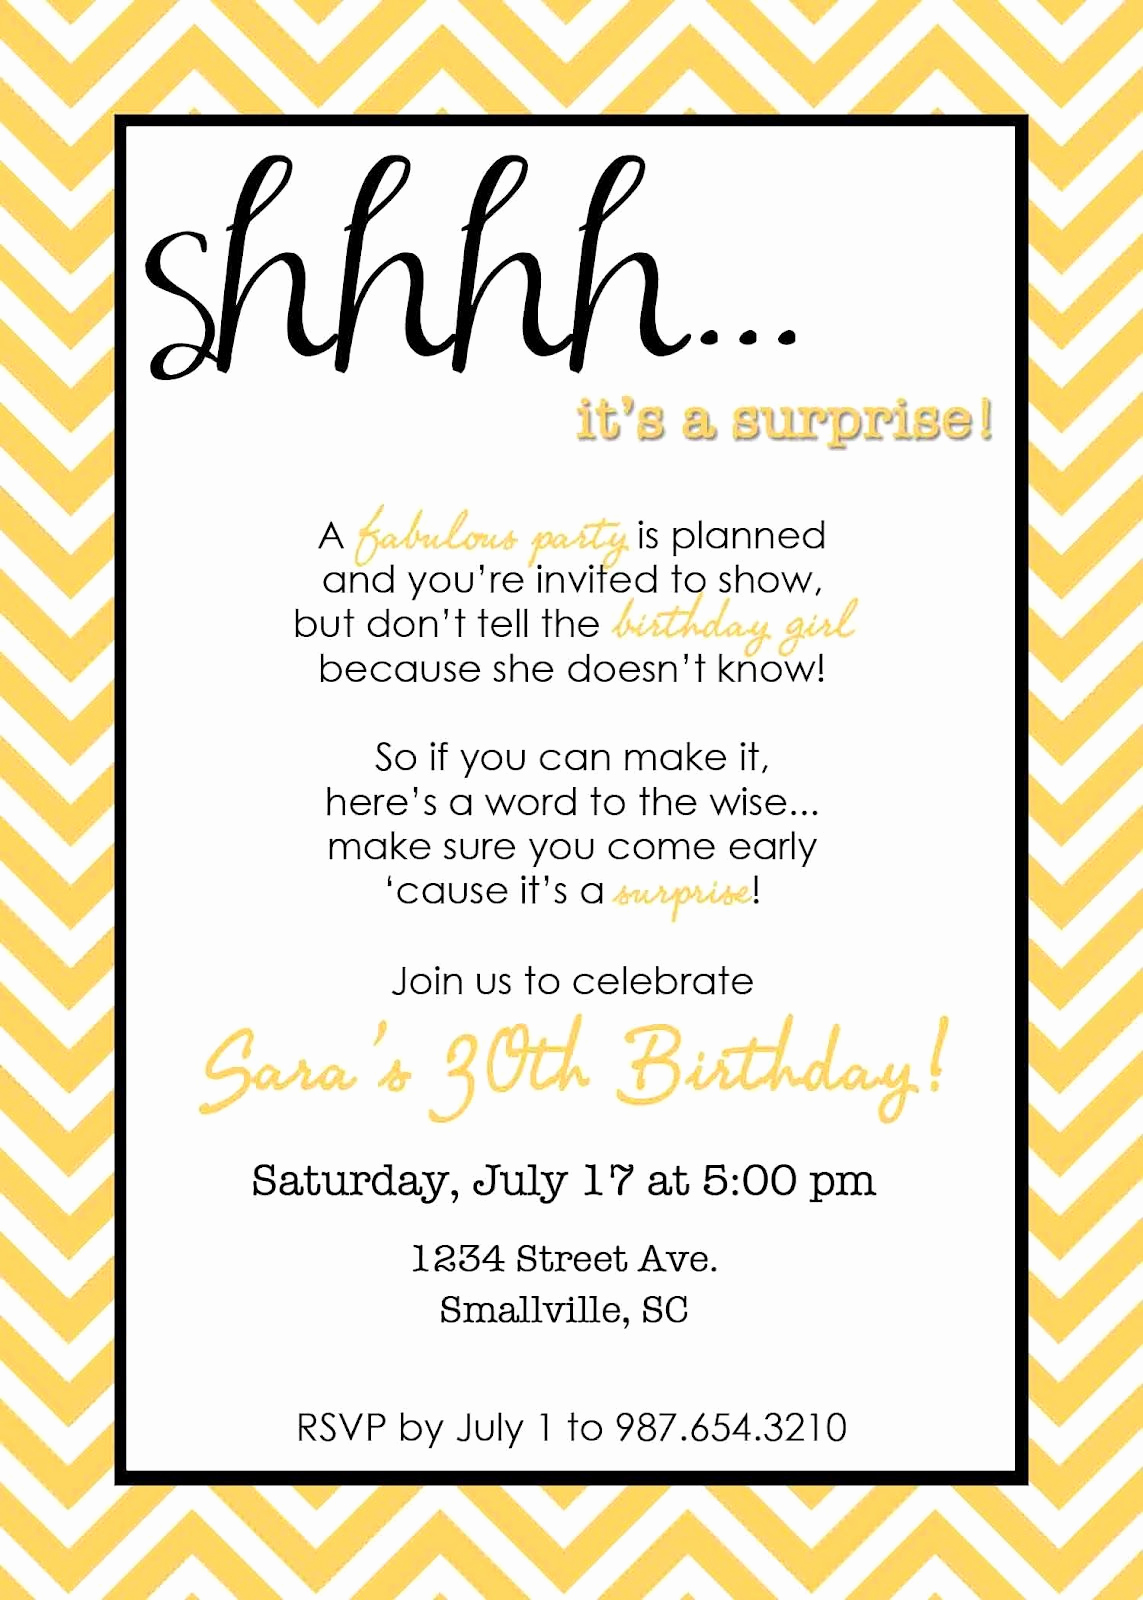 Birthday Invitation Message for Adults Fresh Wording for Surprise Birthday Party